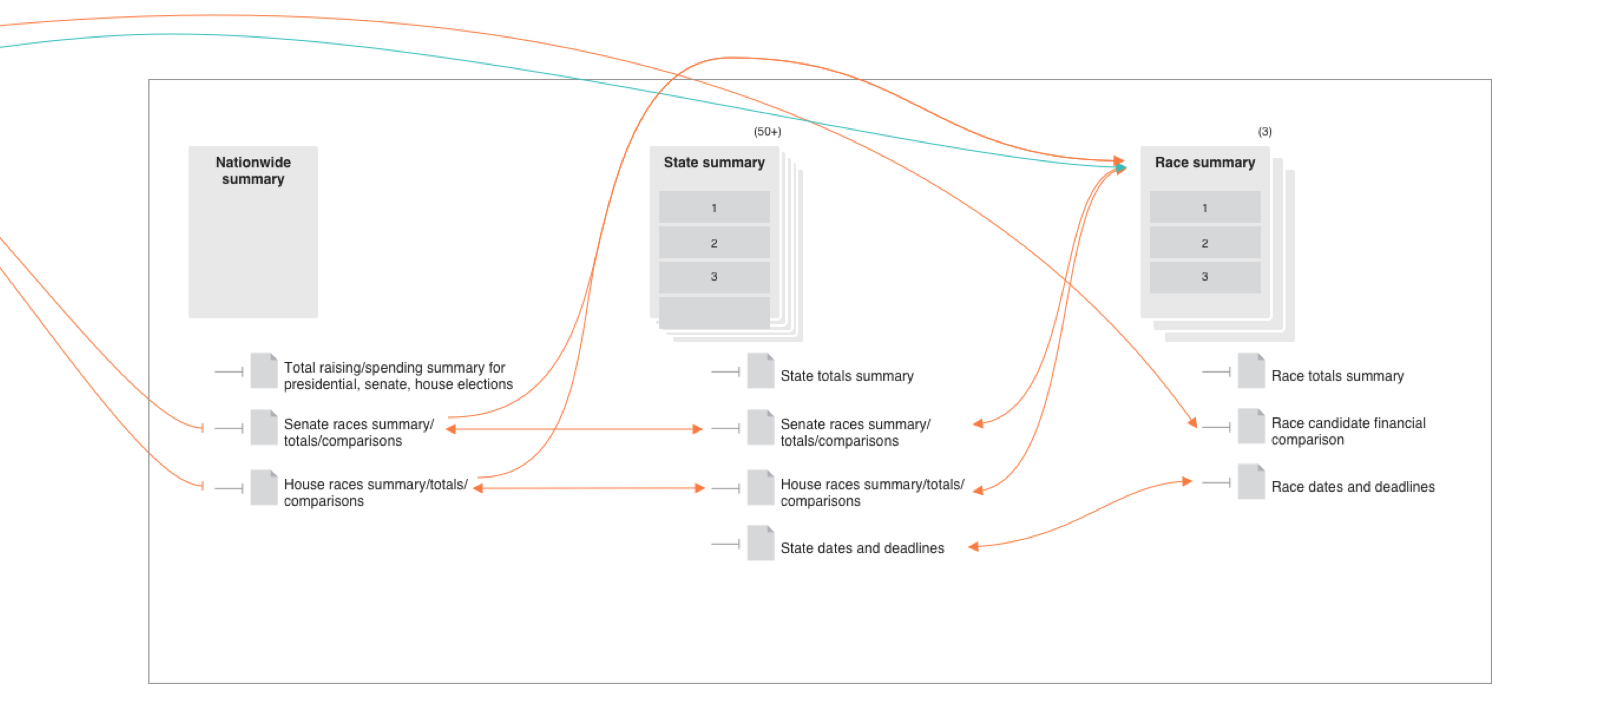 Sketching the information architecture for election summary data